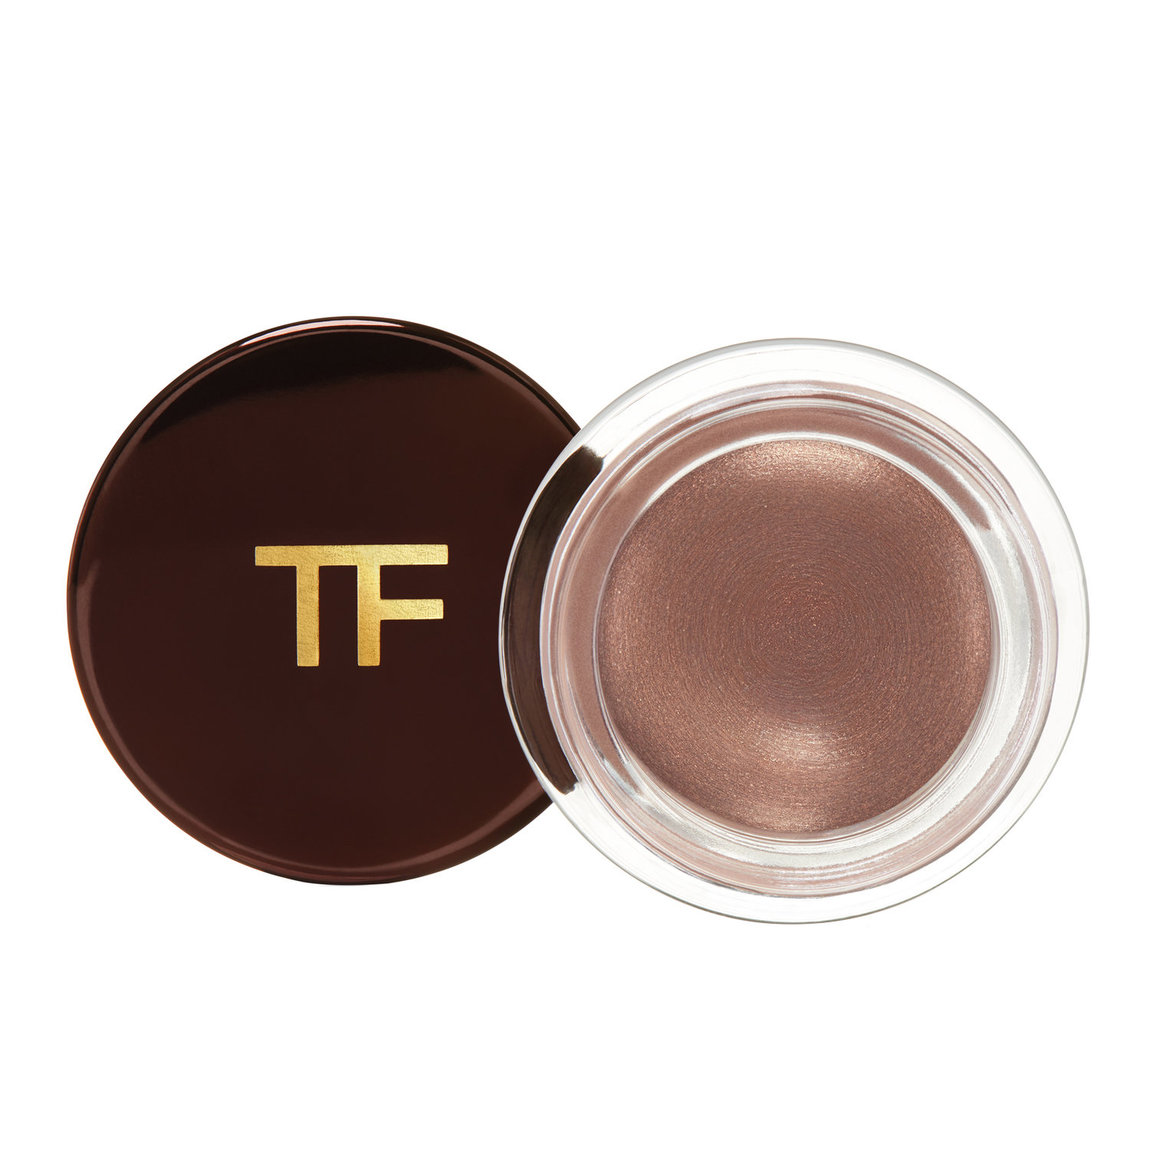 TOM FORD Emotionproof Eye Color 4 Brut Rose alternative view 1 - product swatch.